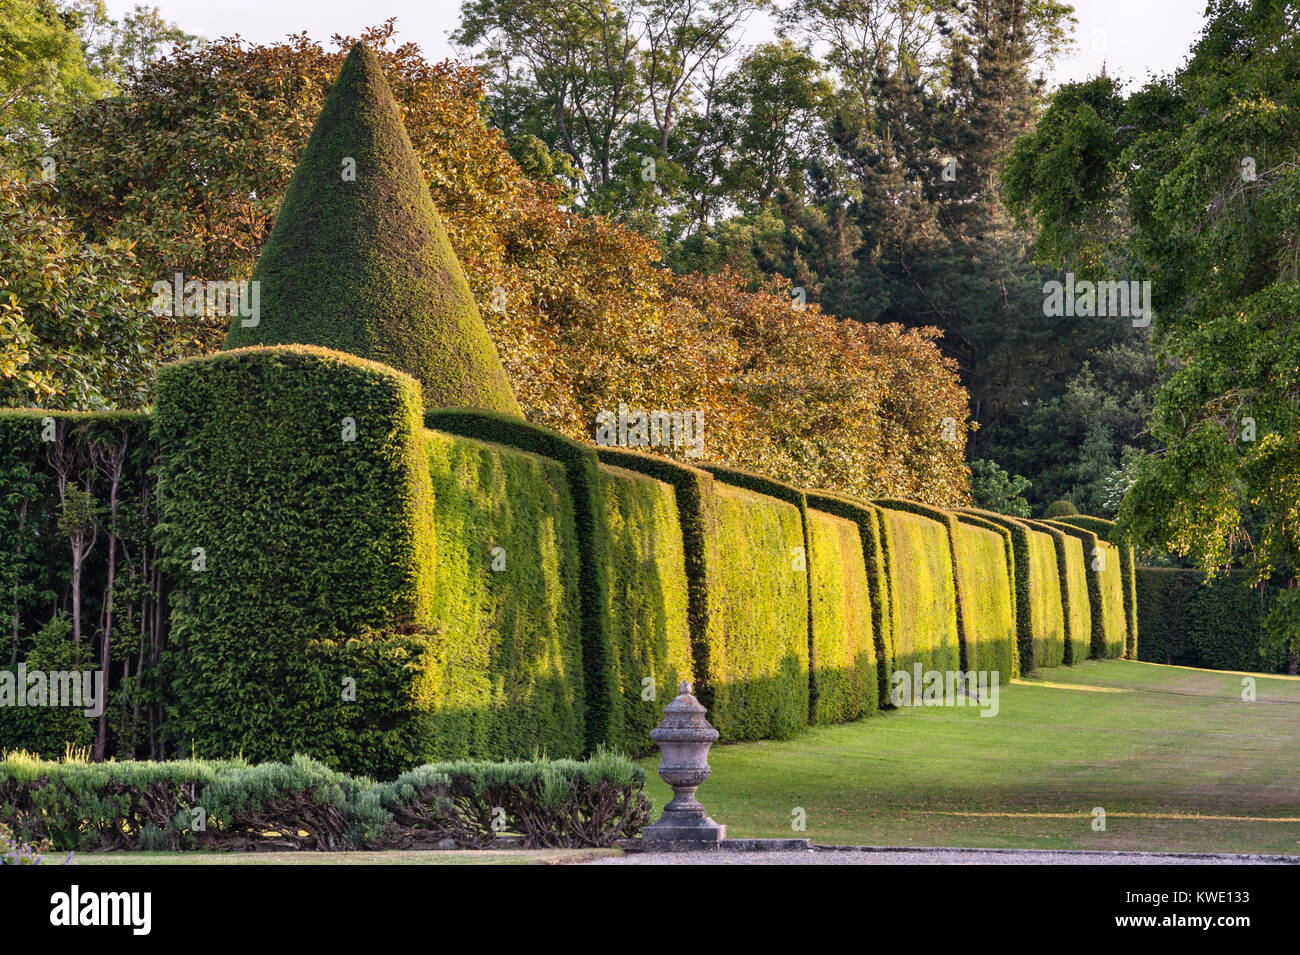 Antony House, Torpoint, Cornwall, UK. A rabbit leaps out from the clipped yew hedge in the formal gardens of this - Stock Image